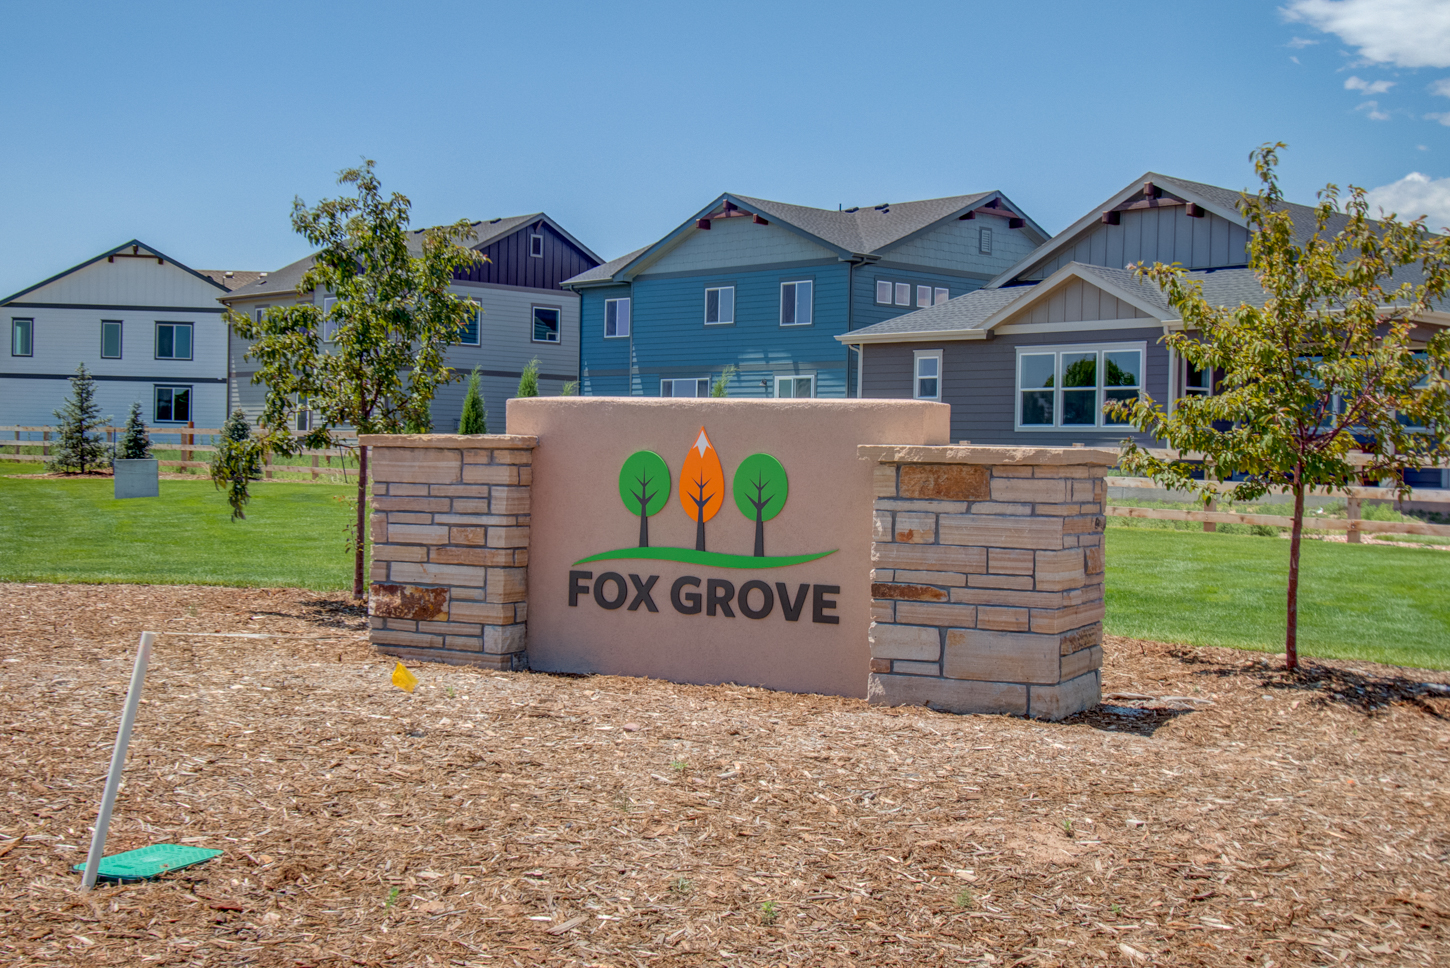 30-monarch-fort_20collins-fox_20grove_20sign-new_20home_20community_fox_20grove